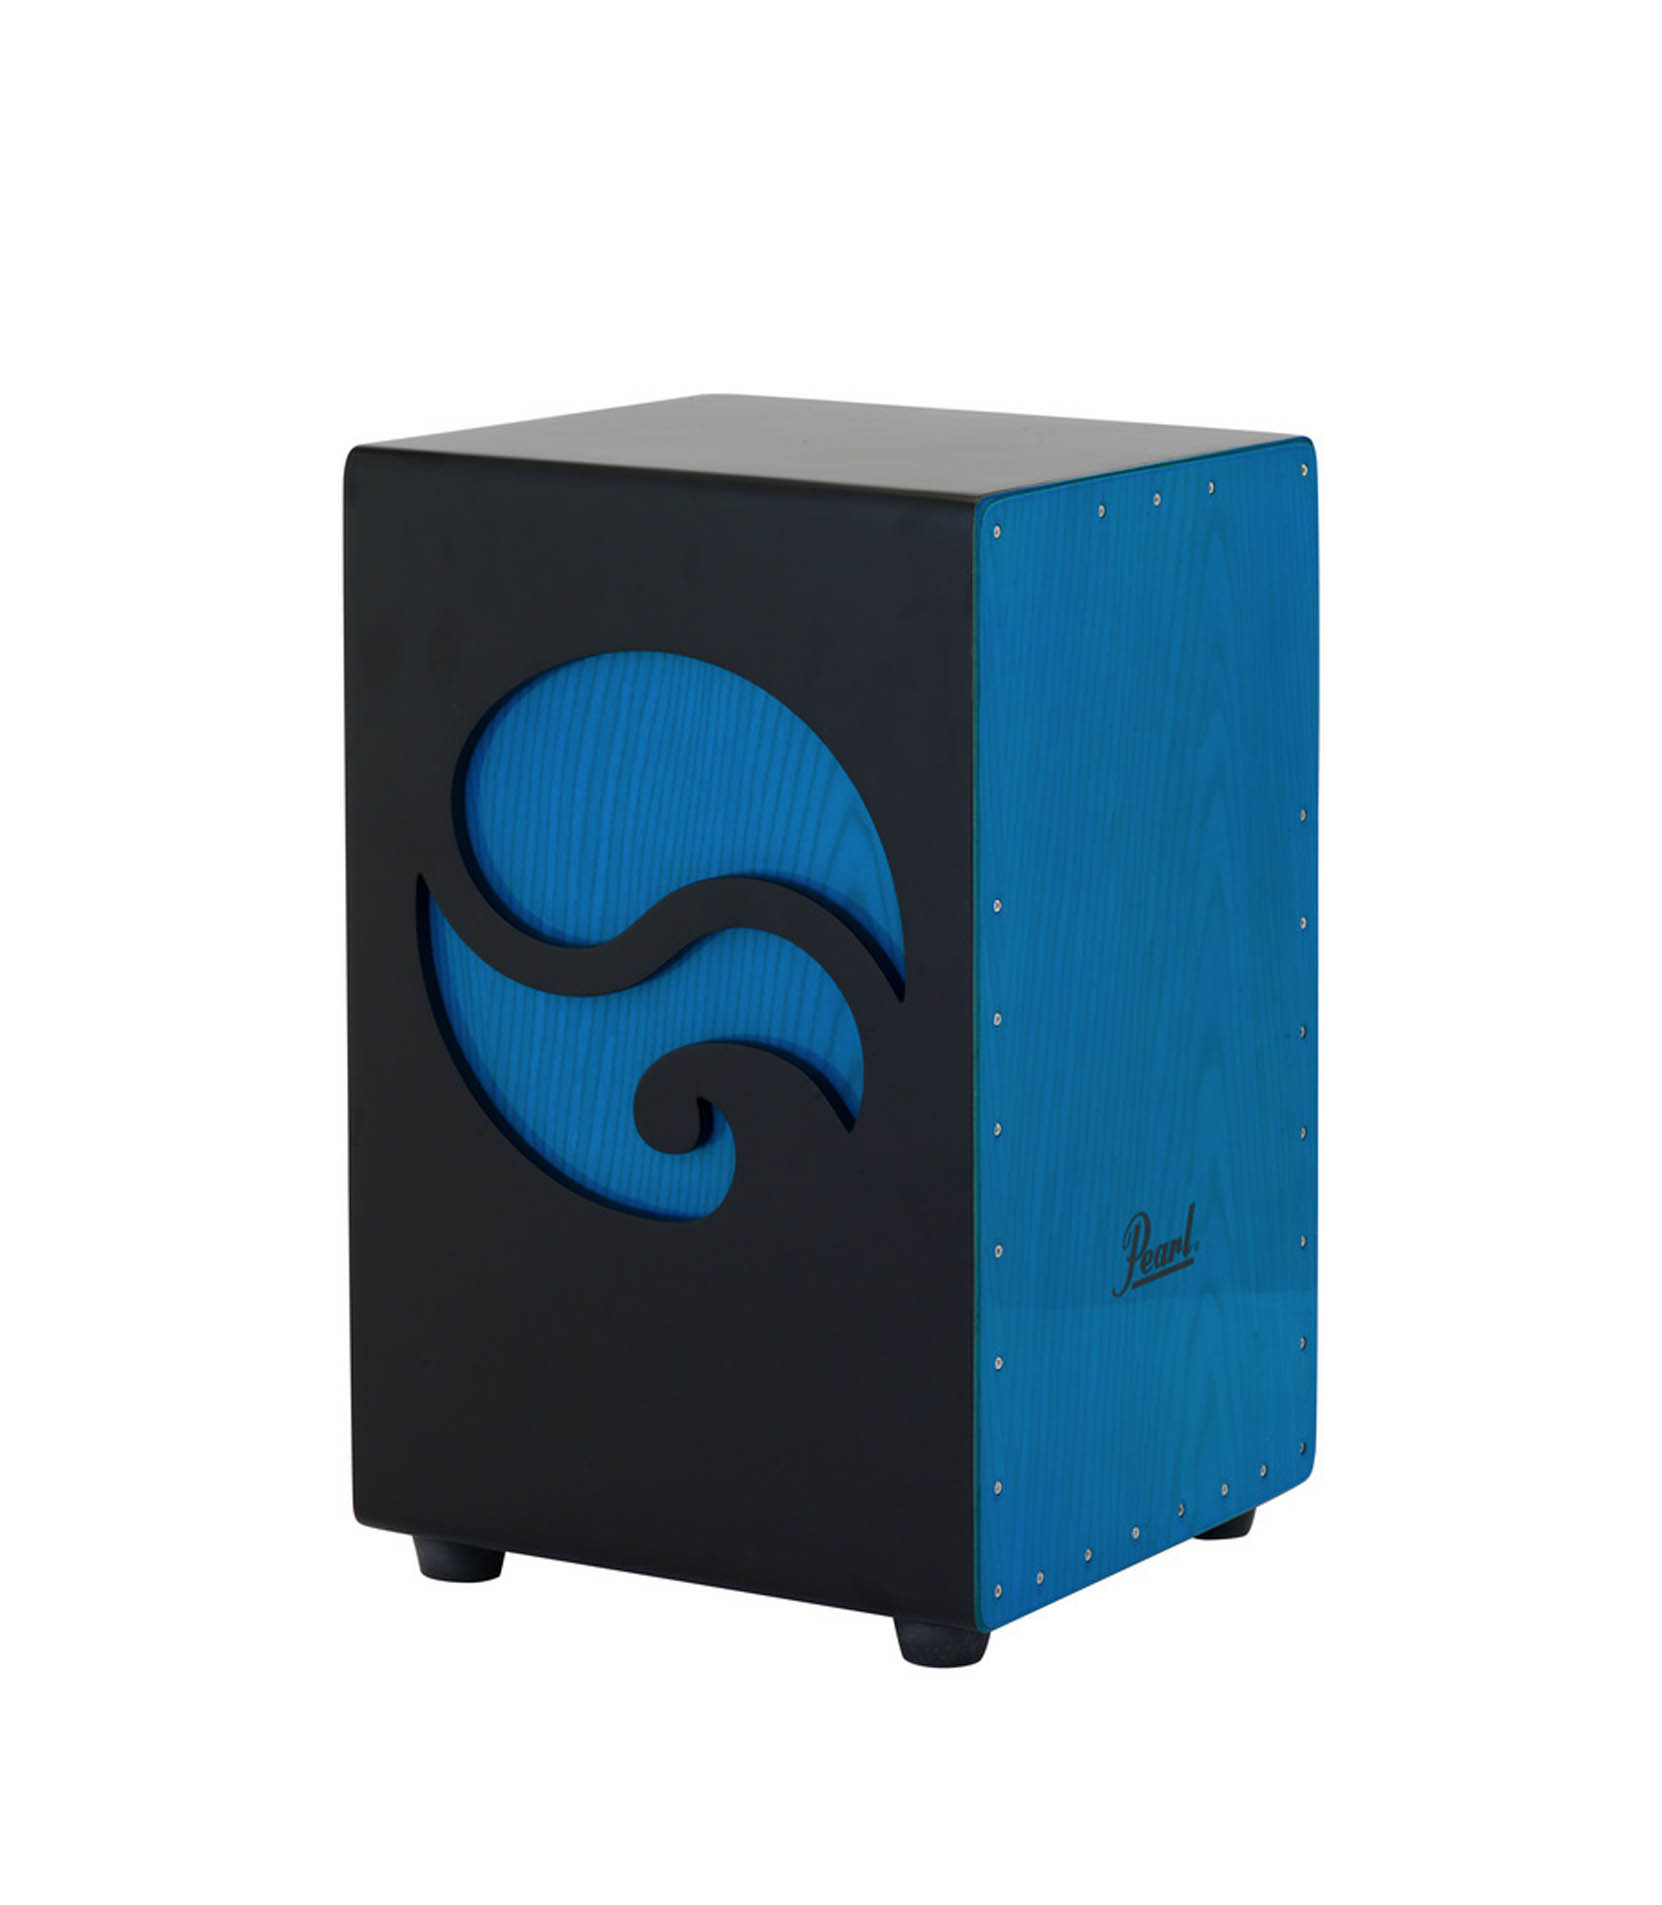 Pearl - PBC 53D 539 3 D Cajon Wave DRSign - Melody House